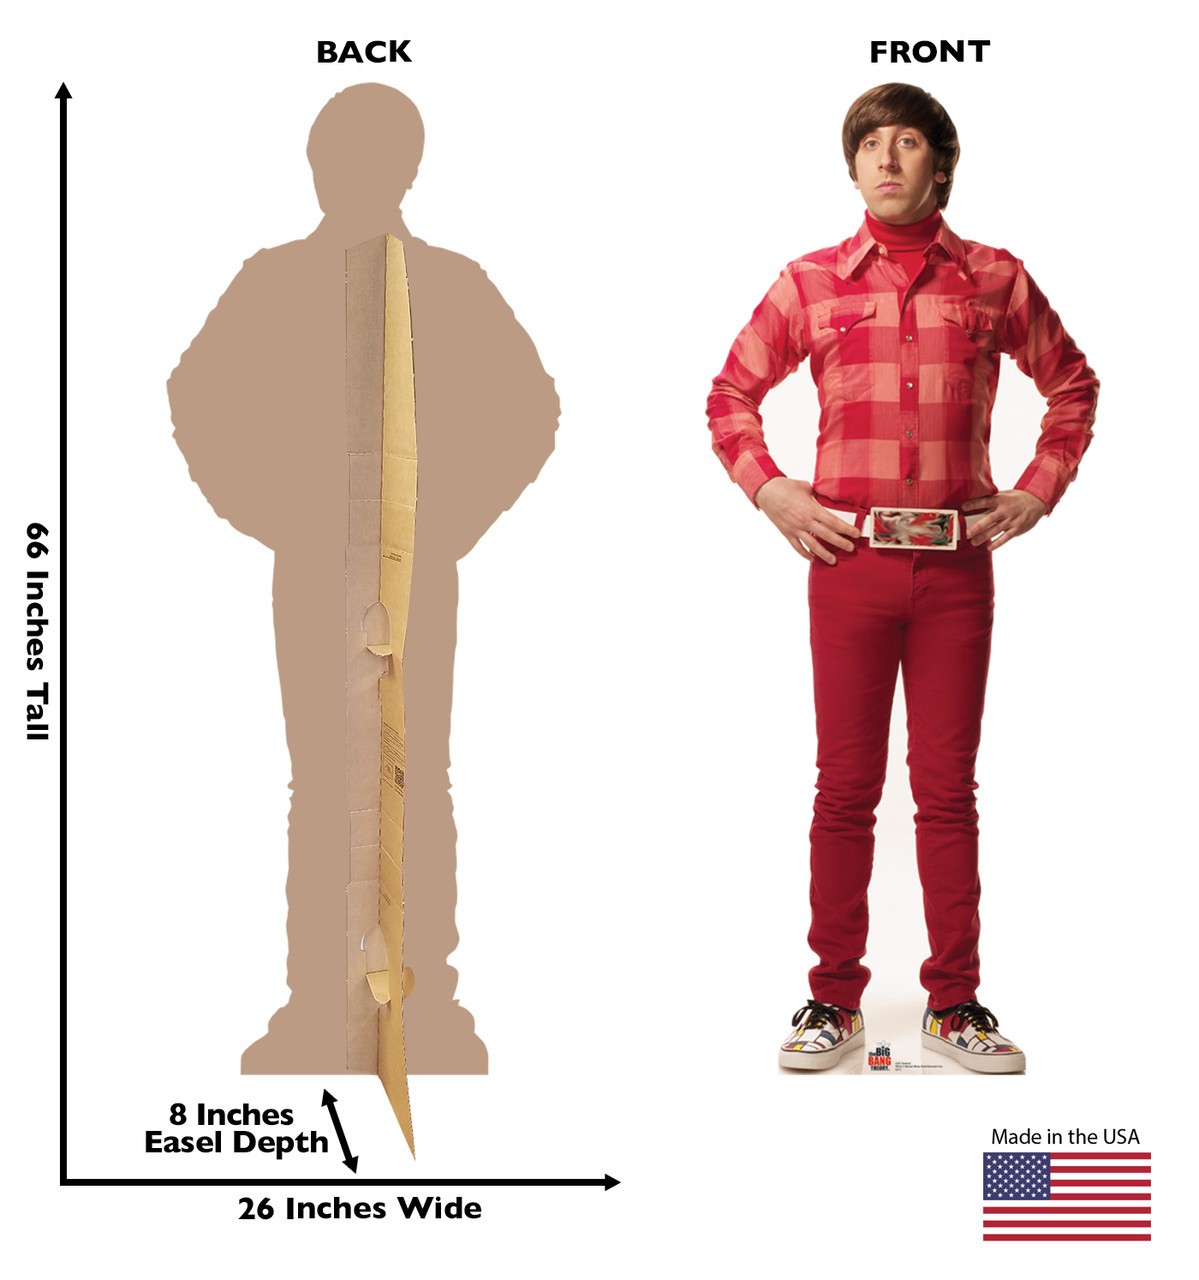 Howard from The Big Bang Theory cardboard cutout